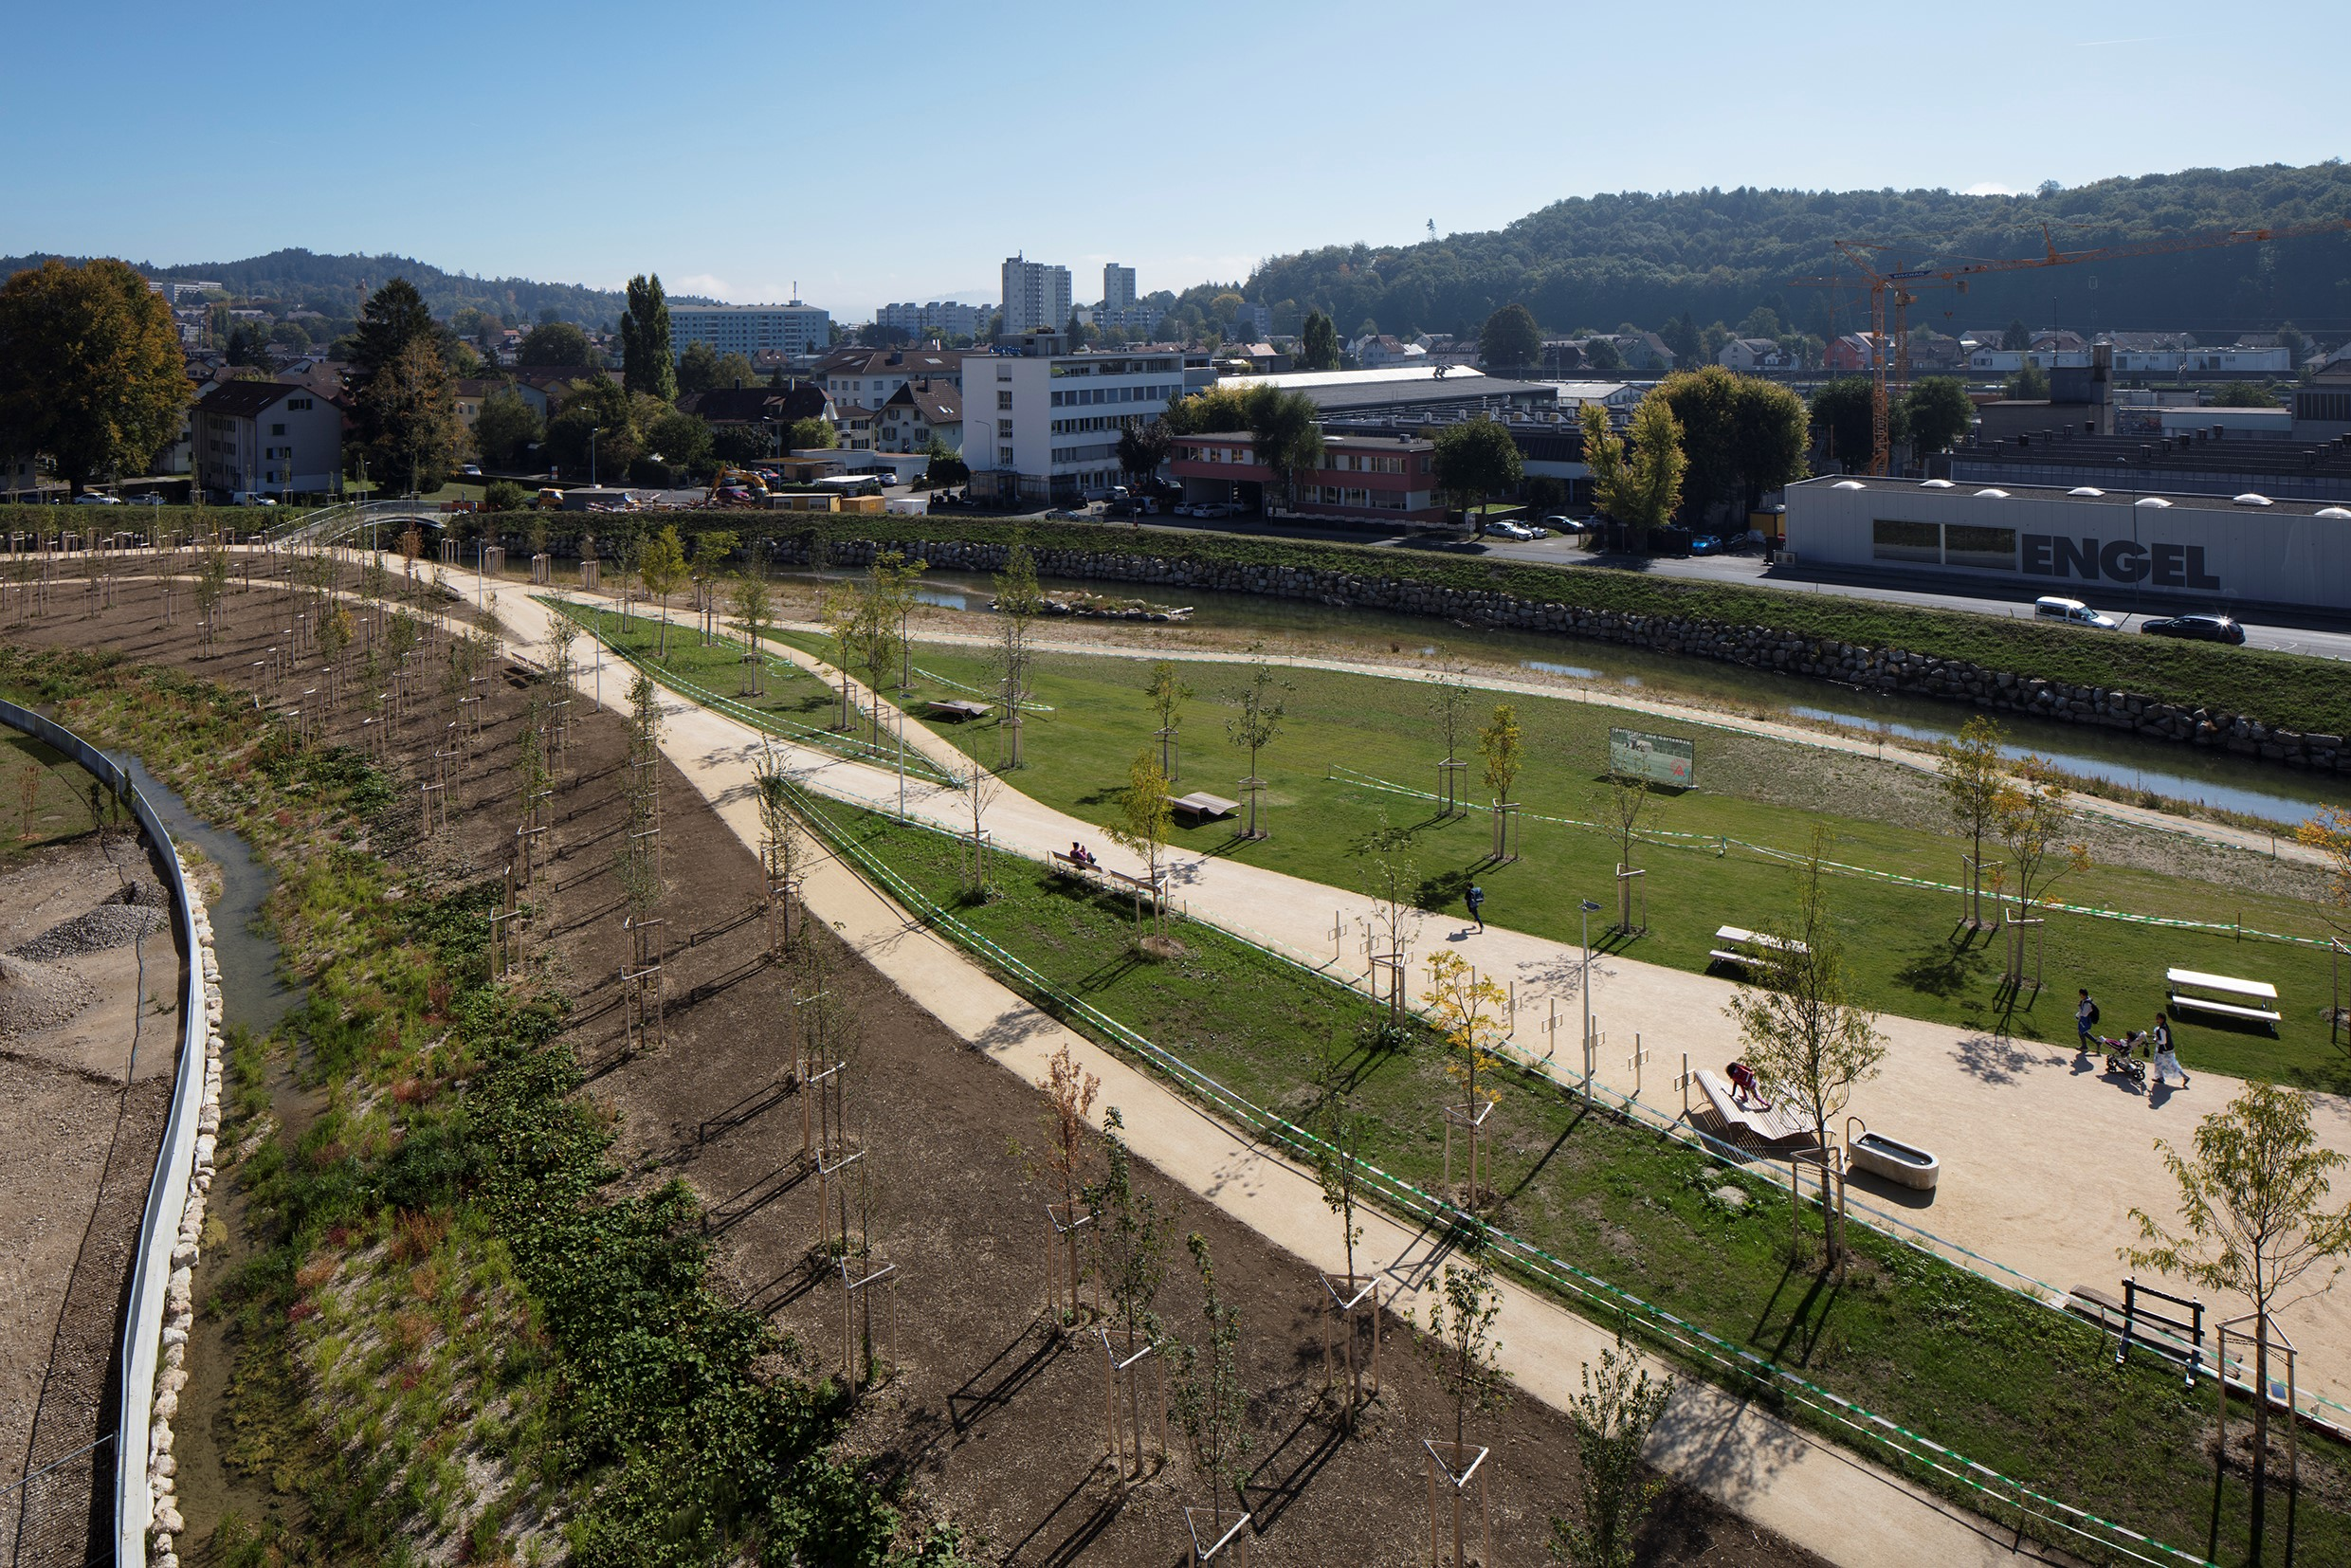 """IFLA Europe Exhibition """"Landscape as a Common Ground"""" continues - we present project from Switzerland entitled: """"Schüssinsel Park""""!"""